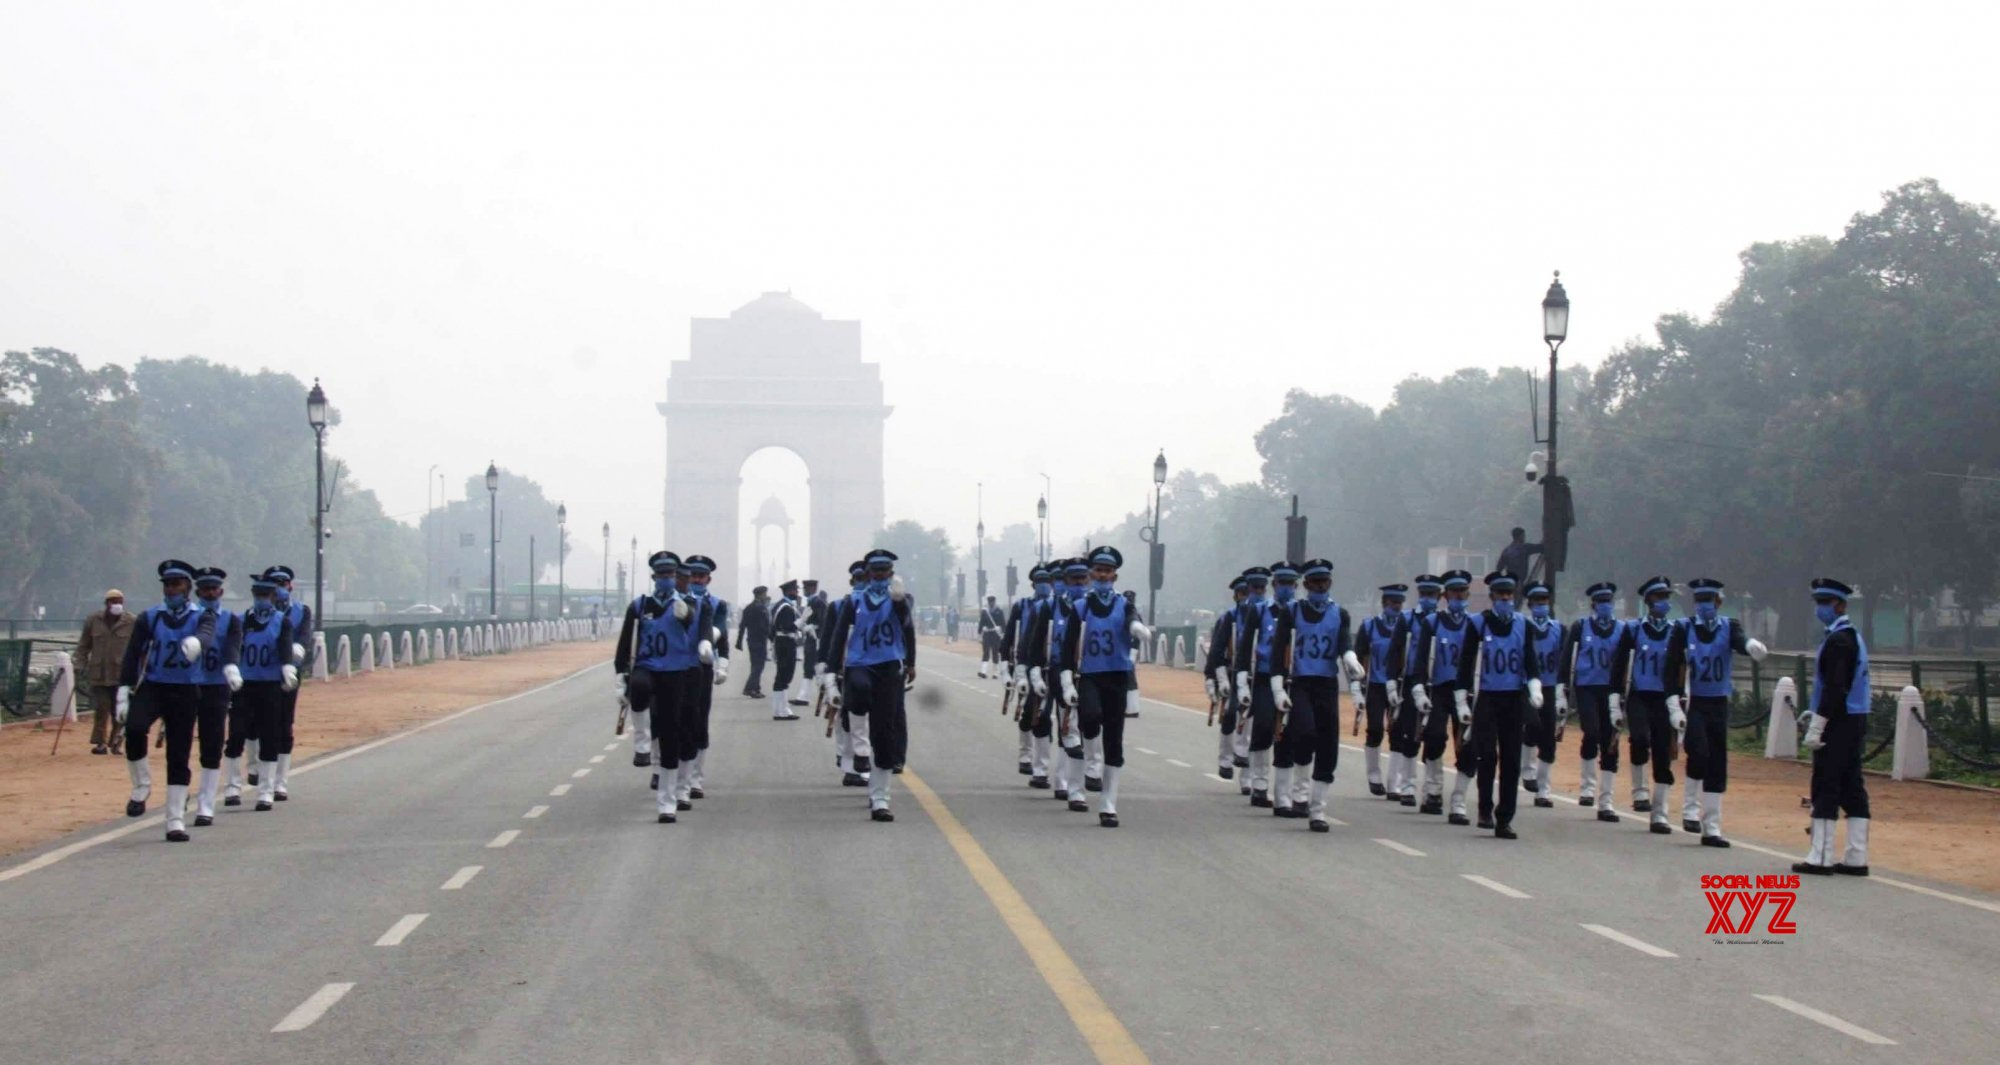 New Delhi: Air force personnel parade rehearsal for upcoming Republic Day celebration, at Rajpath #Gallery